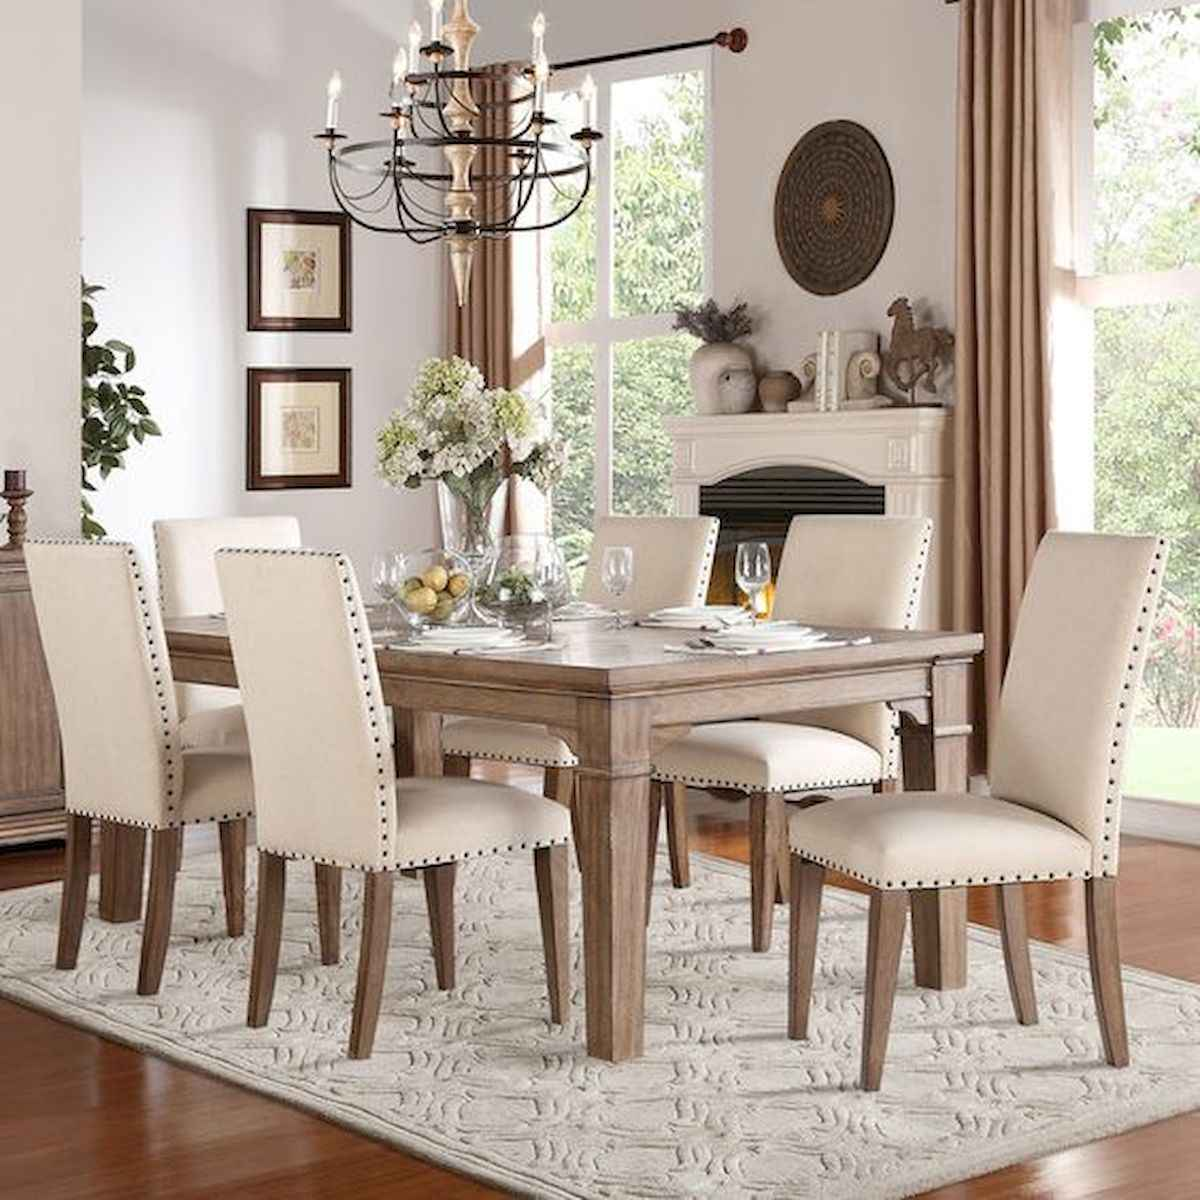 55 Stunning DIY Projects Furniture Tables Dining Rooms Design Ideas (1)